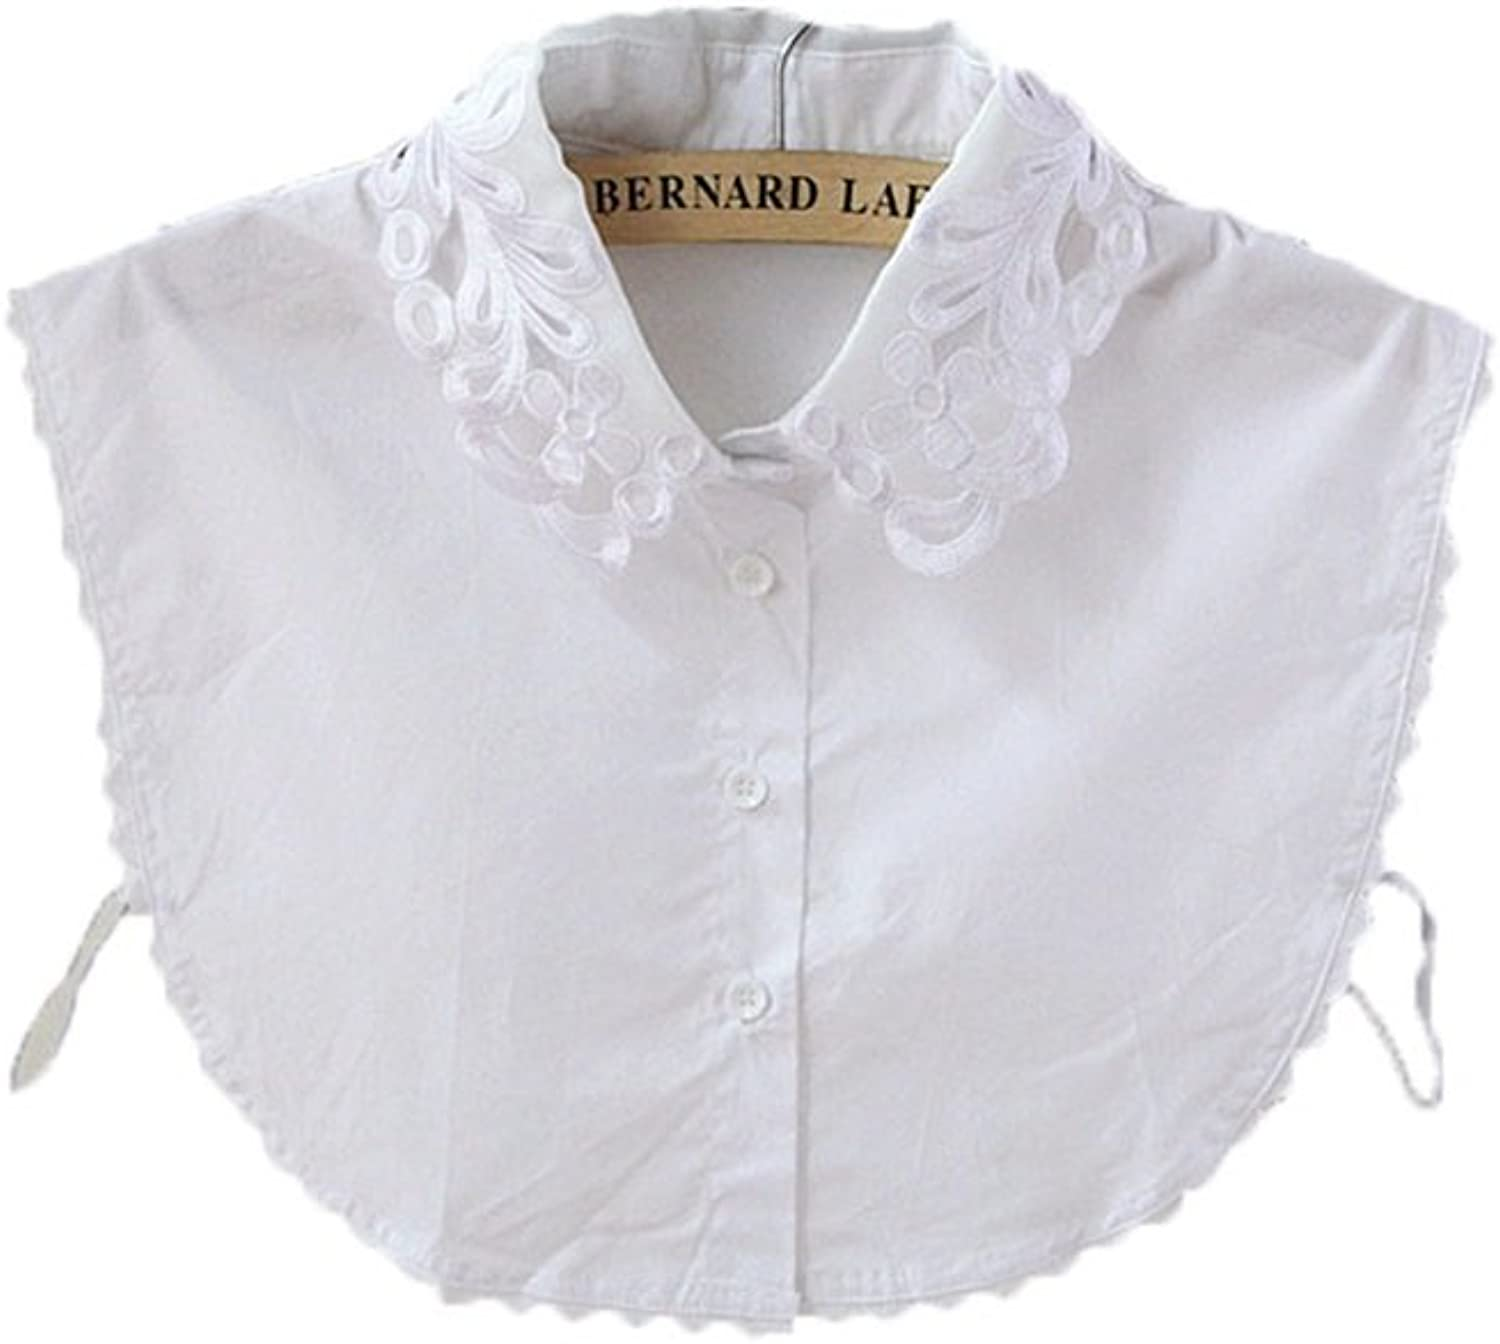 Women's Embroidery Hollow Lace Fake Collar Button Detachable Half Shirt False Blouse DIY Tops